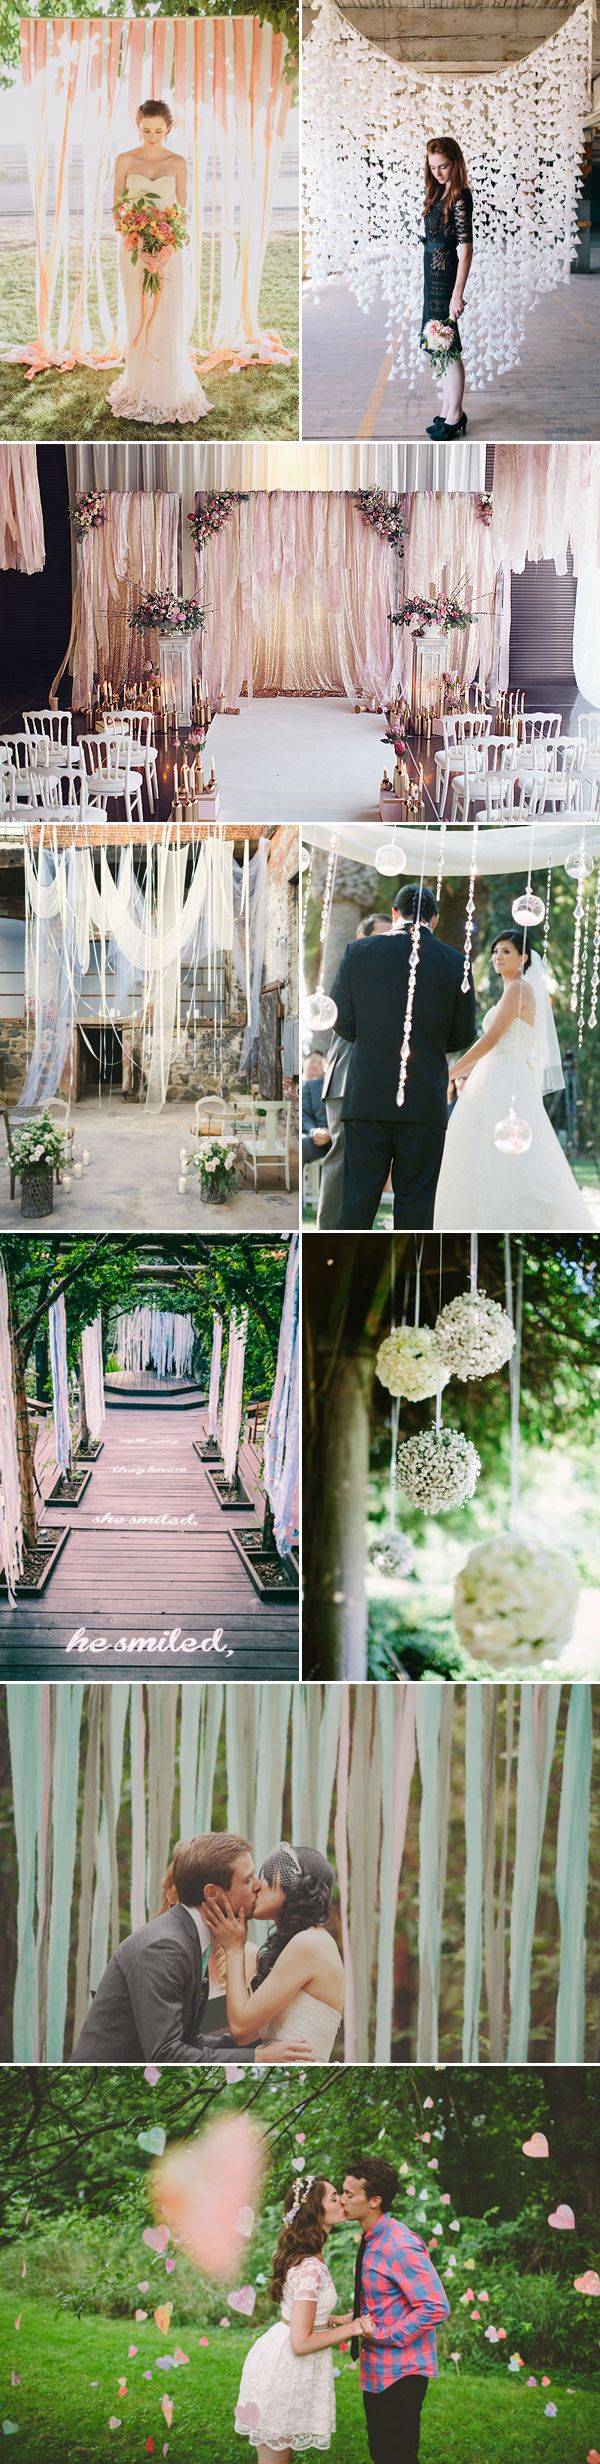 25 Creative Ceremony Backdrop Ideas - Romantic #wedding #favors Repinned by: www.BlueRainbowDesign.com